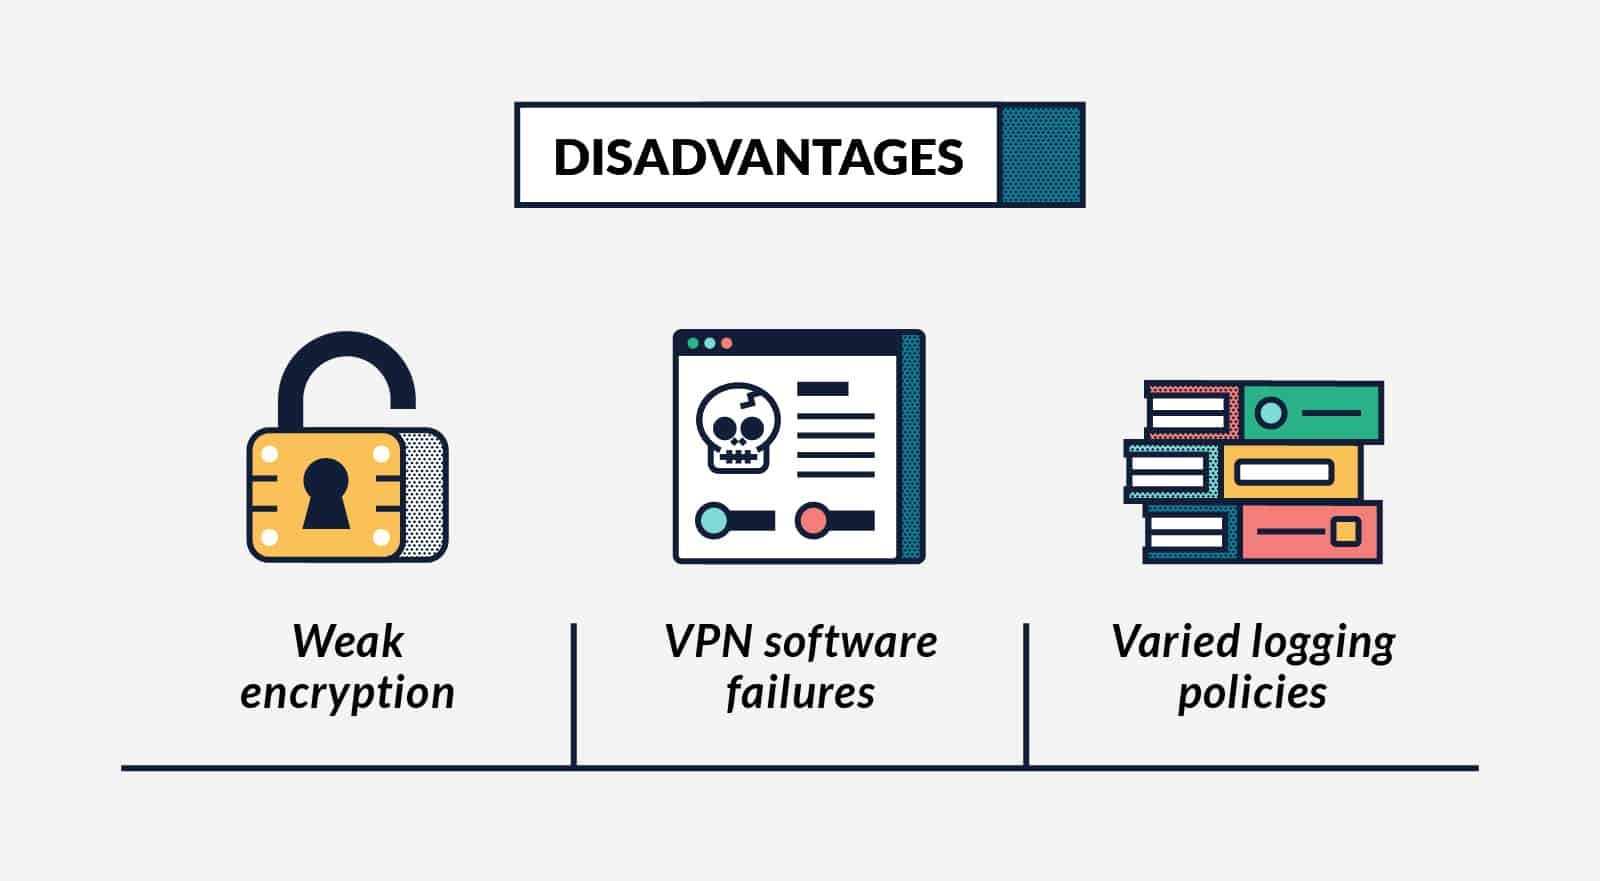 Disadvantages of VPNs